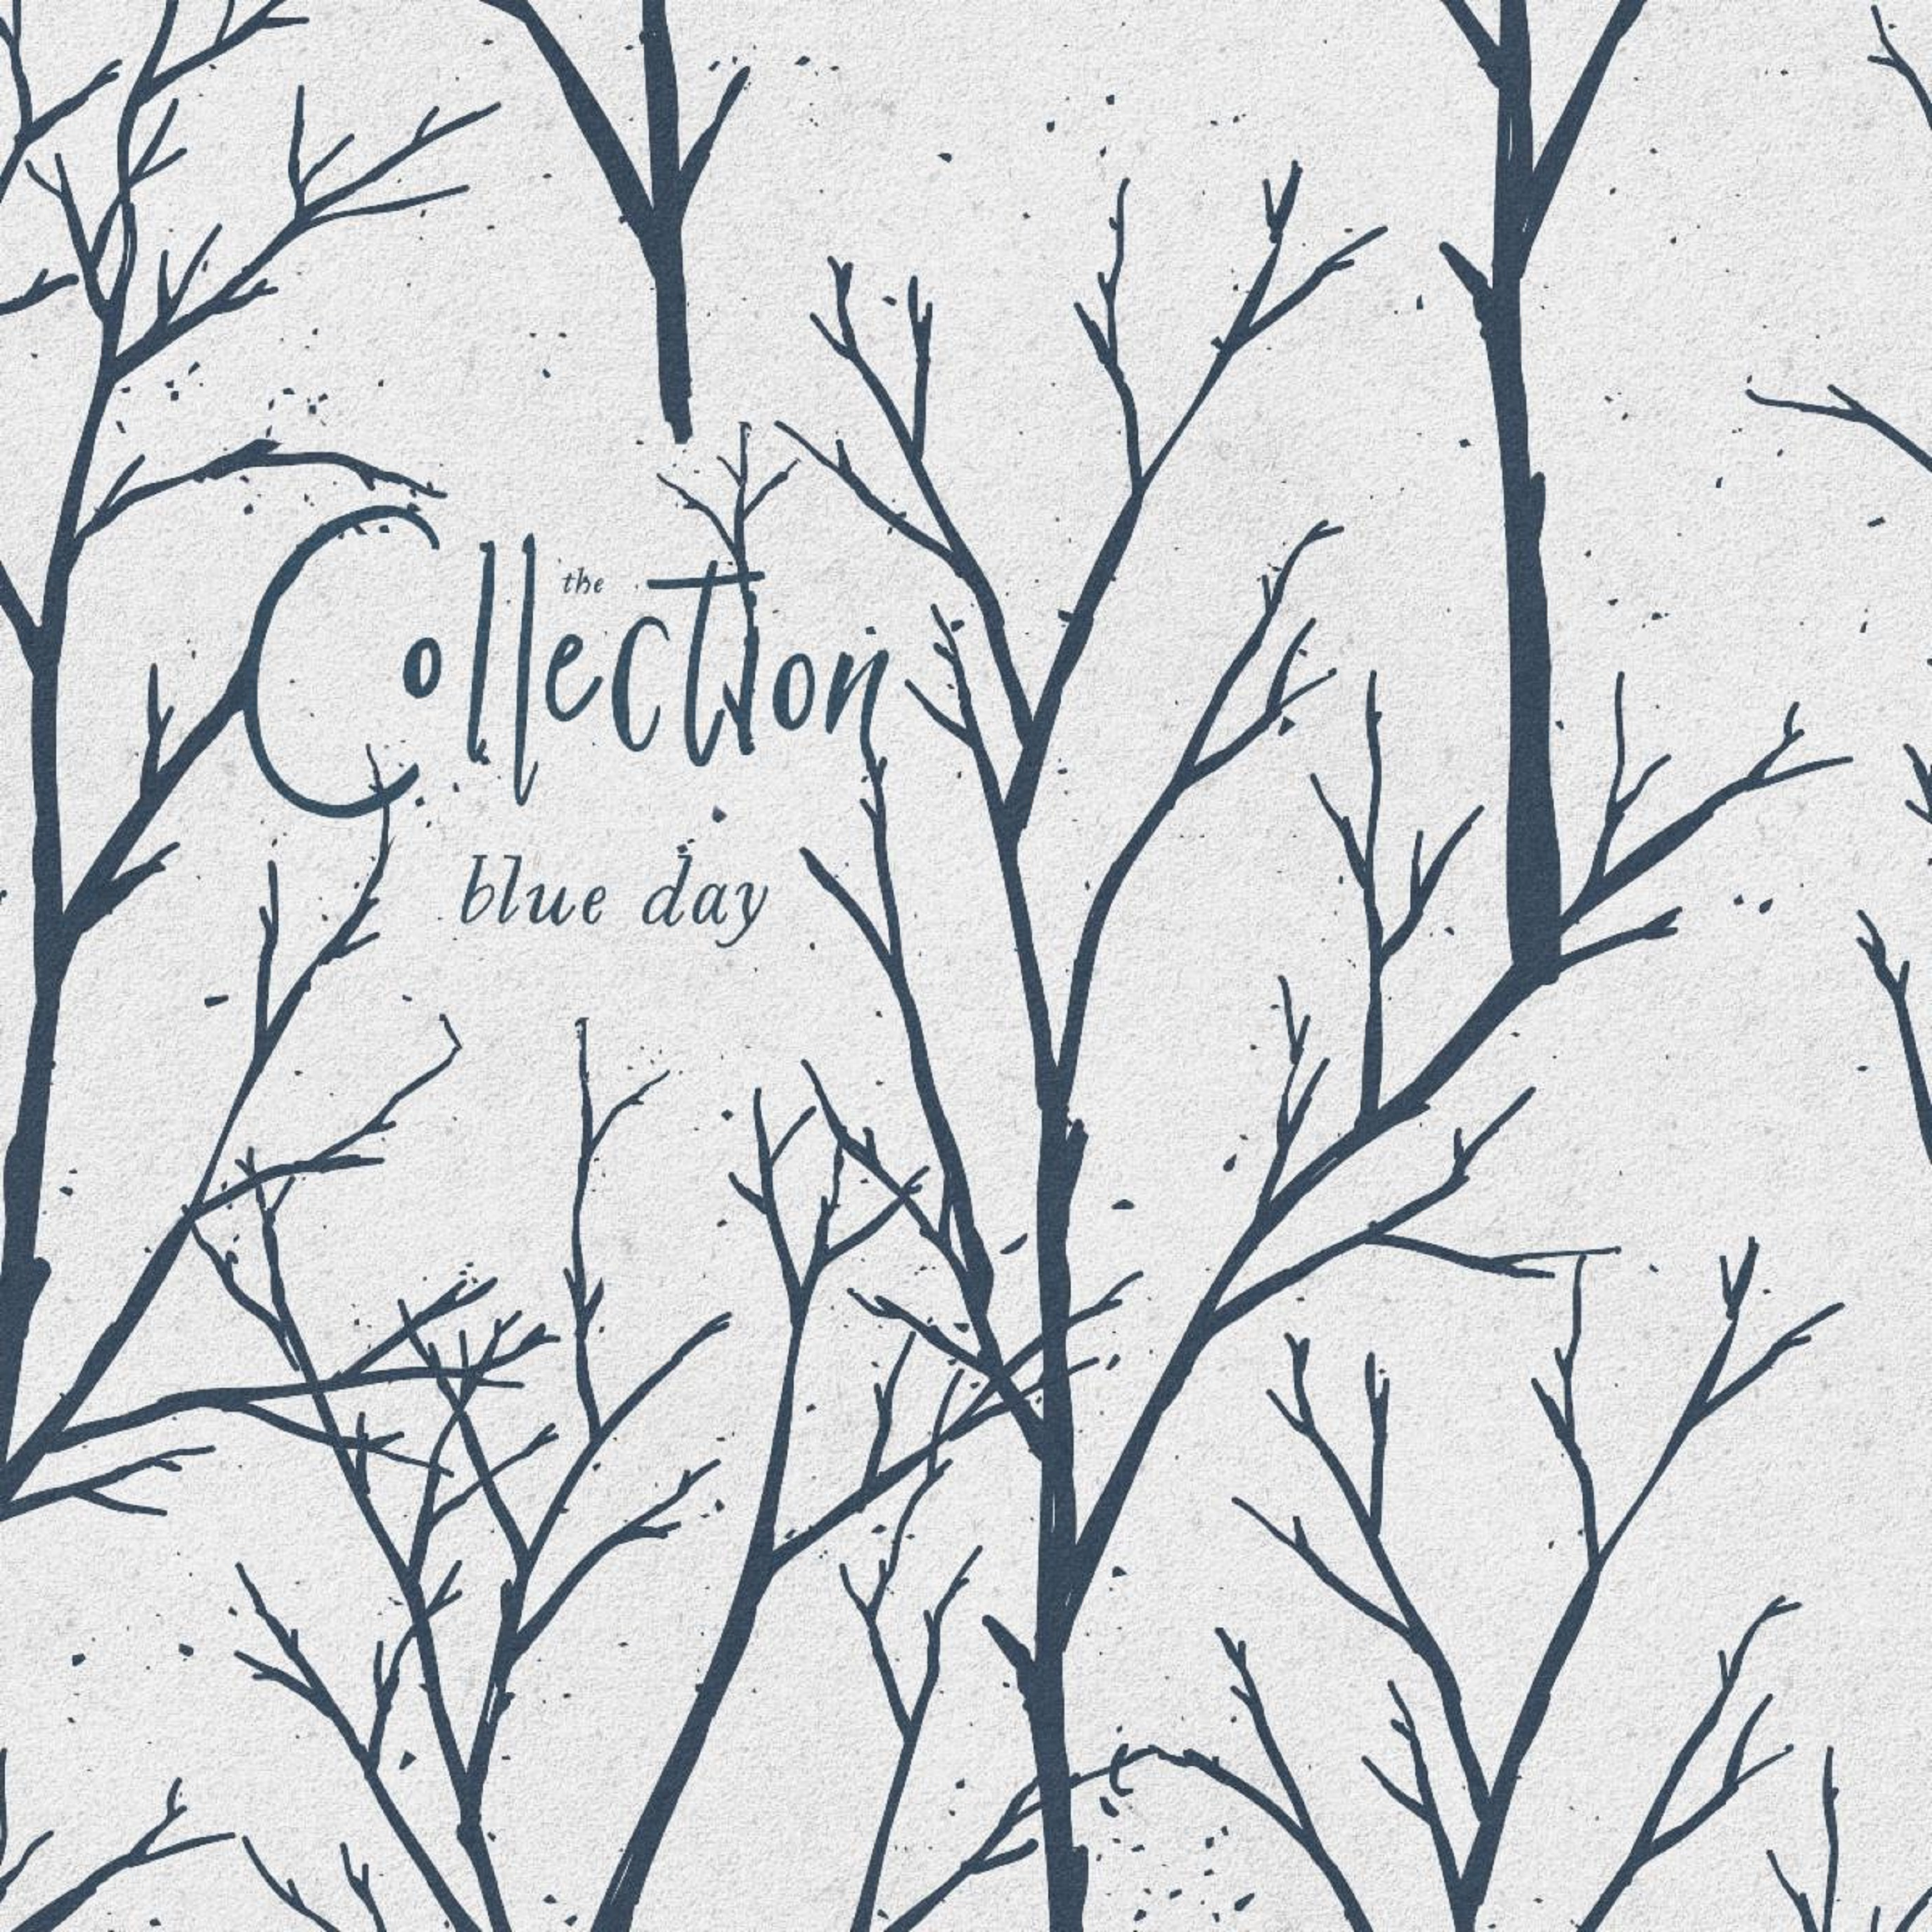 The Collection shares new song 'Blue Day'